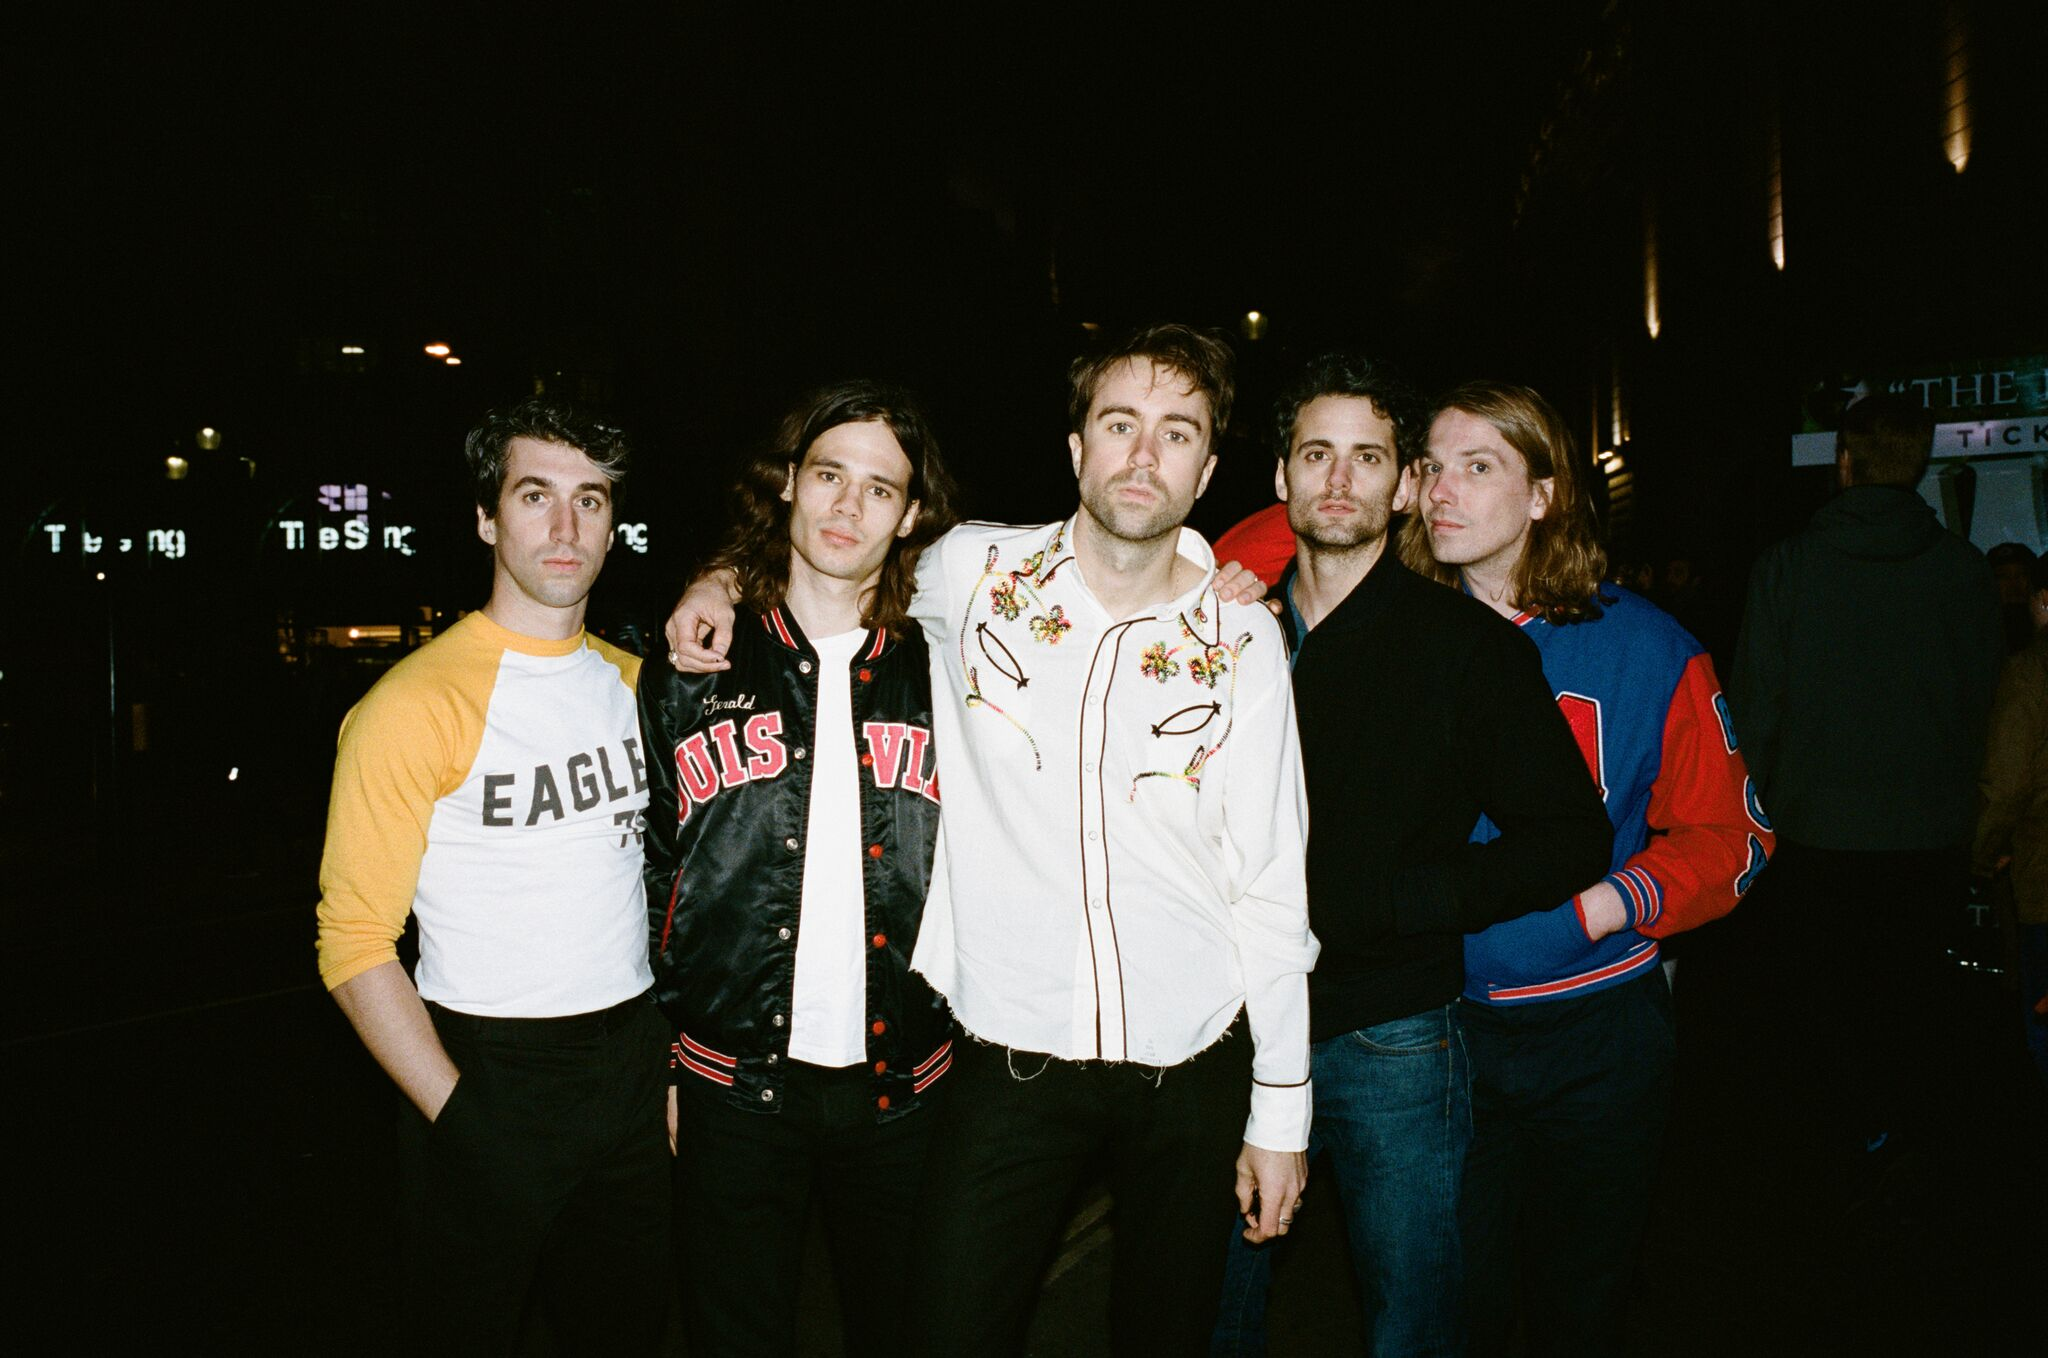 INTERVIEW: THE VACCINES